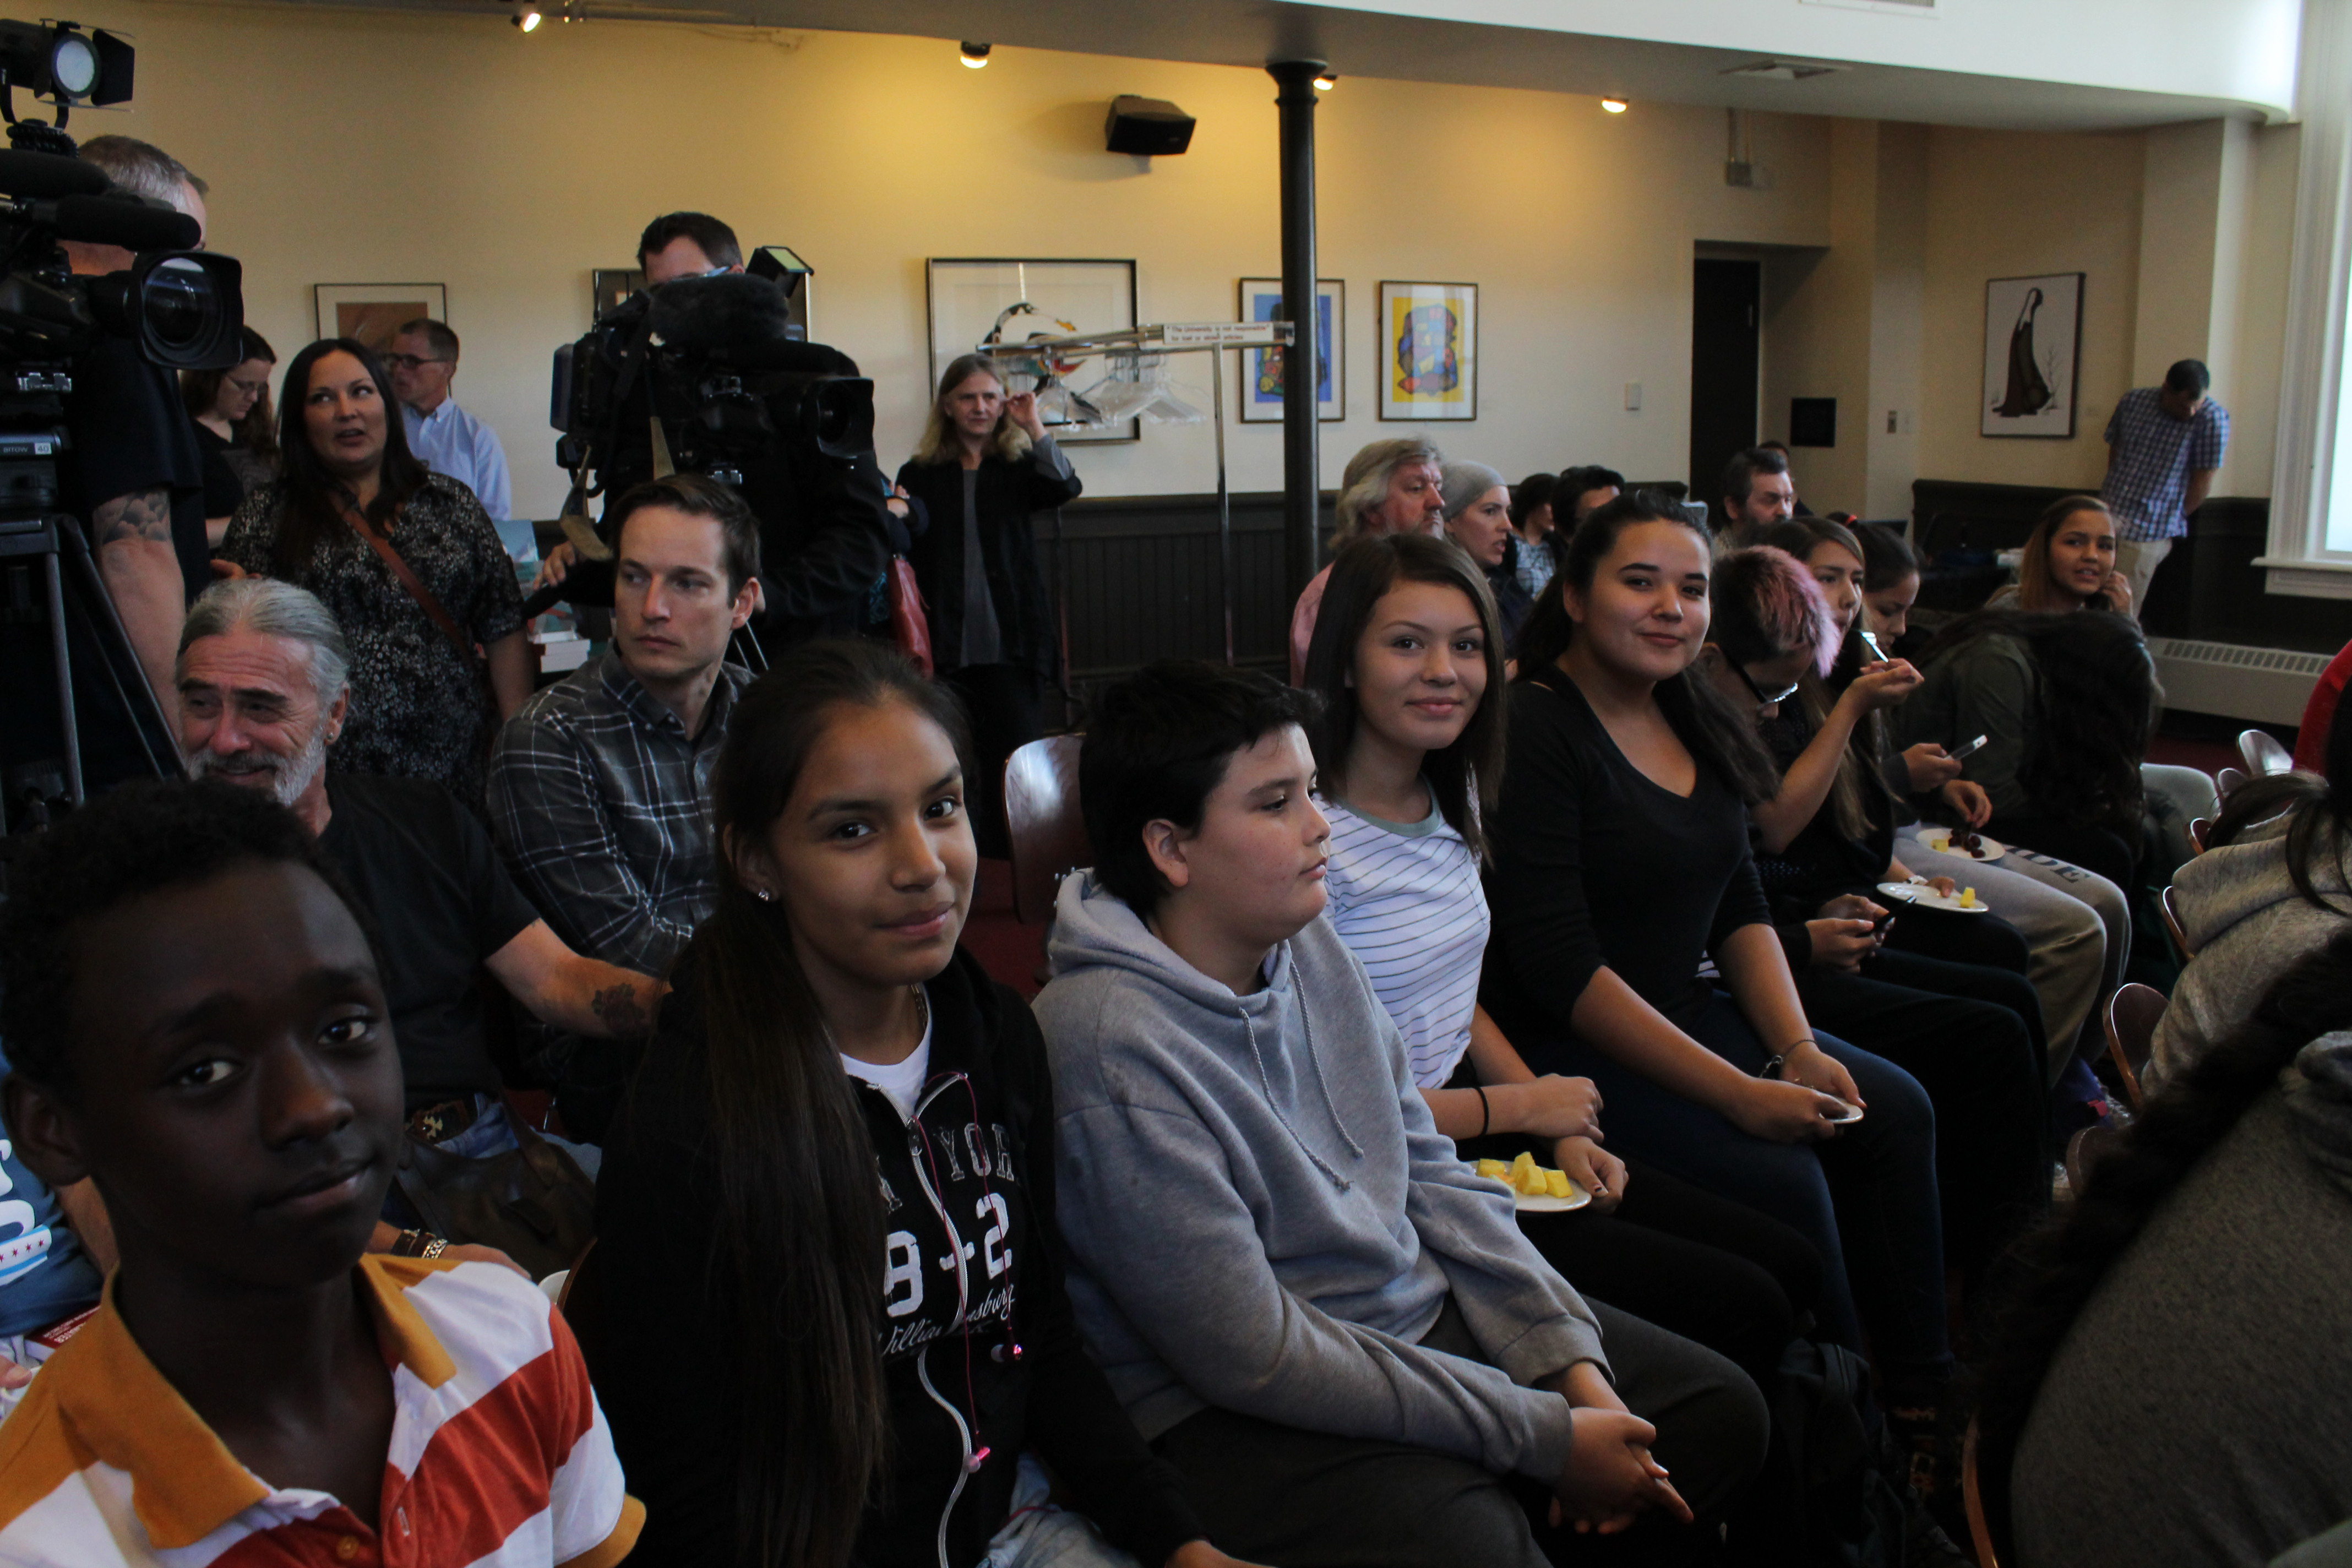 Shanelle Maytwayashing (fourth from left) sits with her classmates at the To Vote or Not To Vote forum at the University of Winnipeg on Mon. Sep. 14, 2015. PHOTO: Riley Chervinski